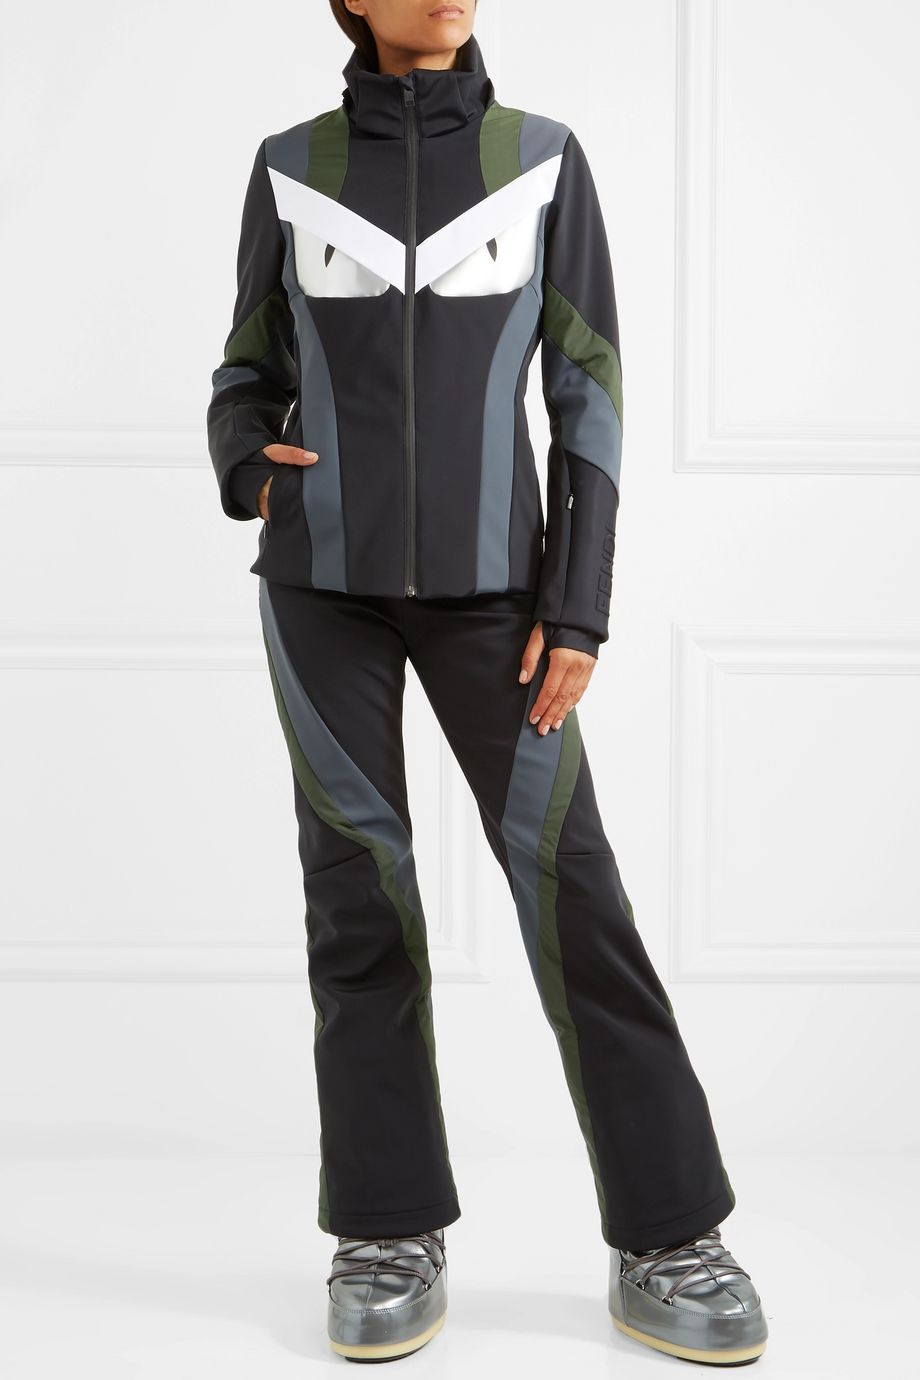 Fendi Wonders paneled hooded ski jacket